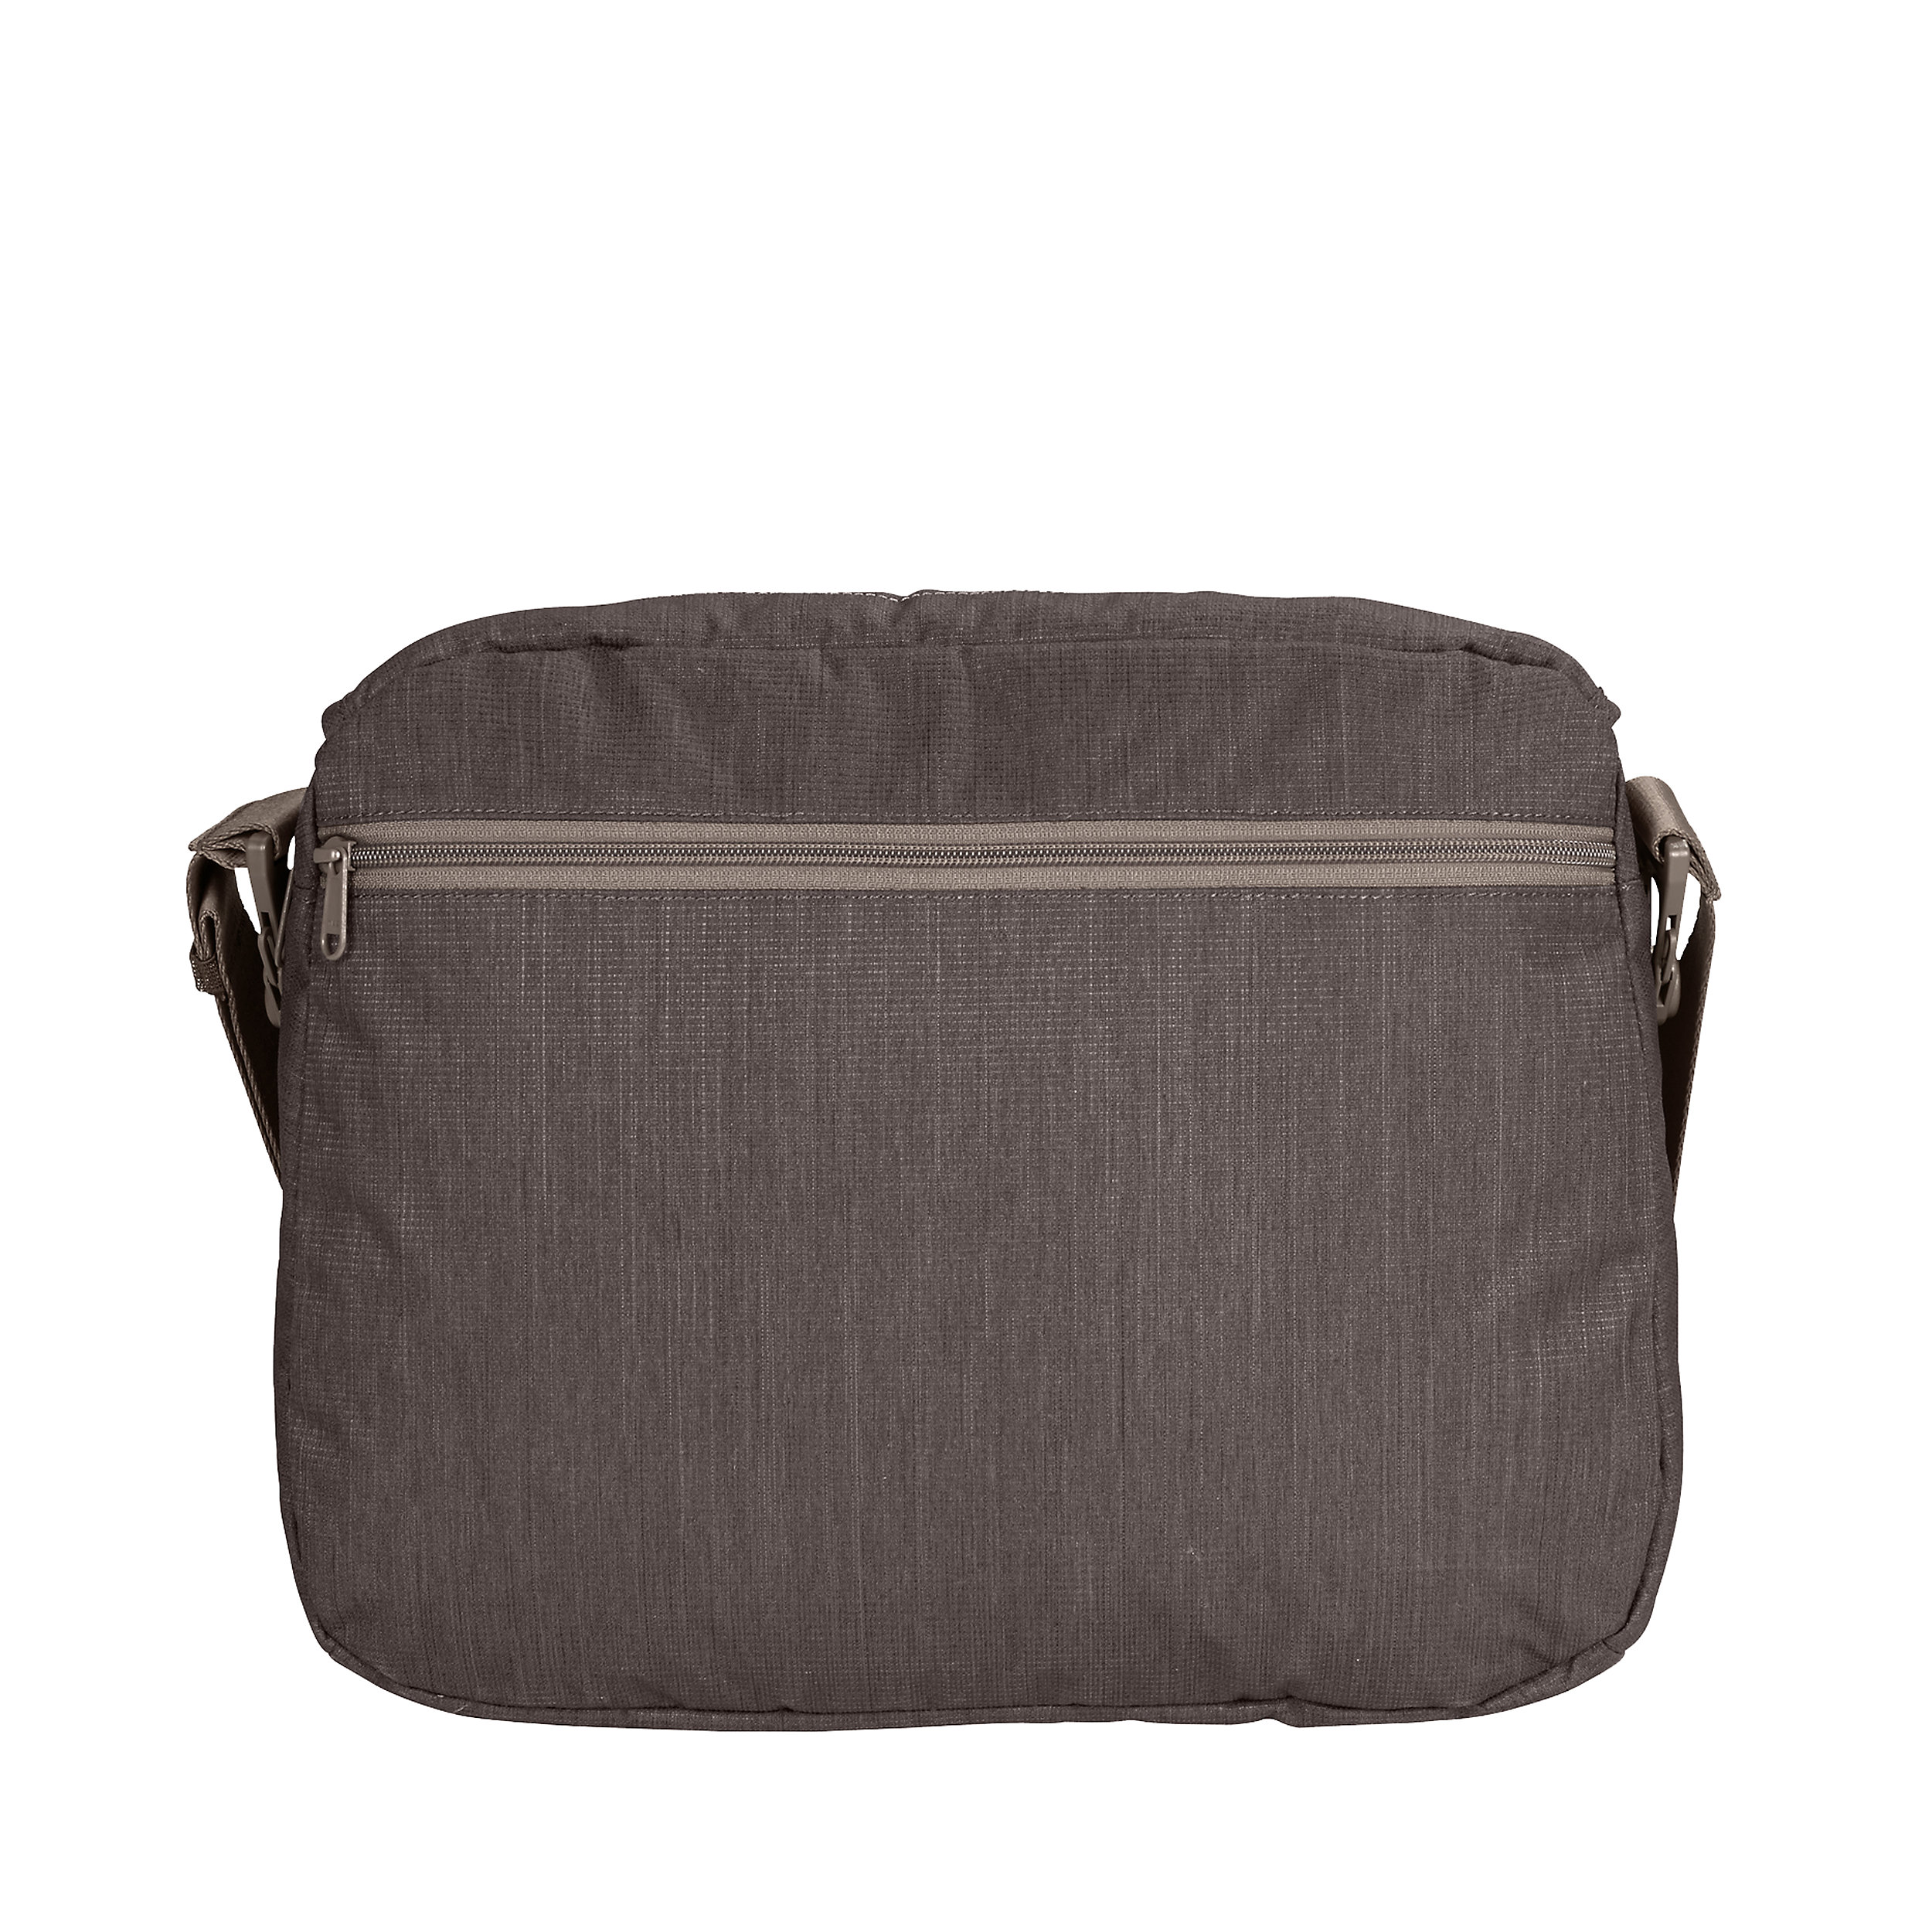 "Messenger Bag haPET II 13,3"" Recycled 11 Liter"